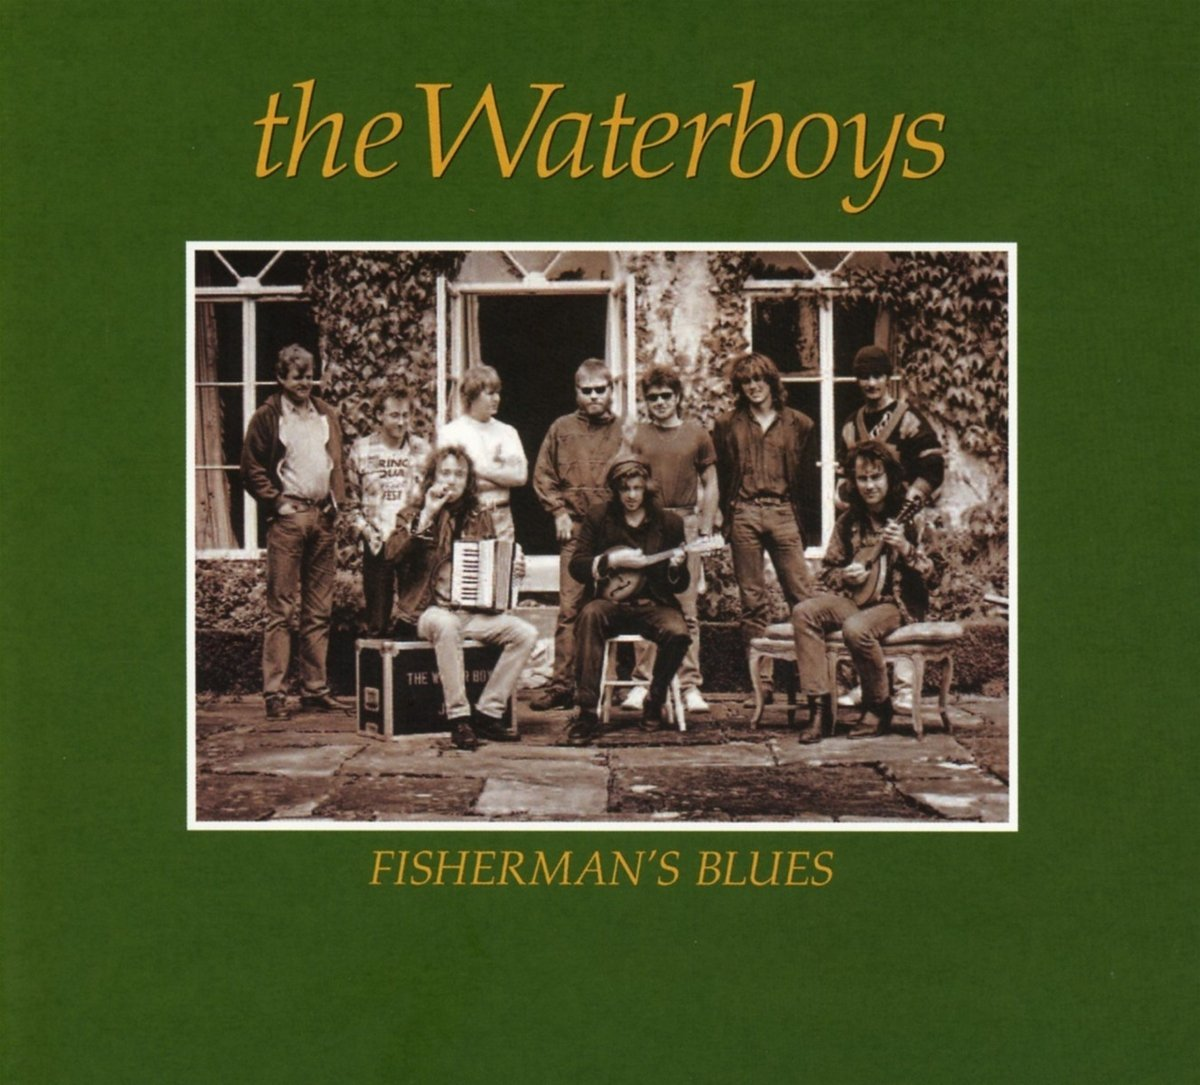 The Waterboys - Fisherman's blues (1988)